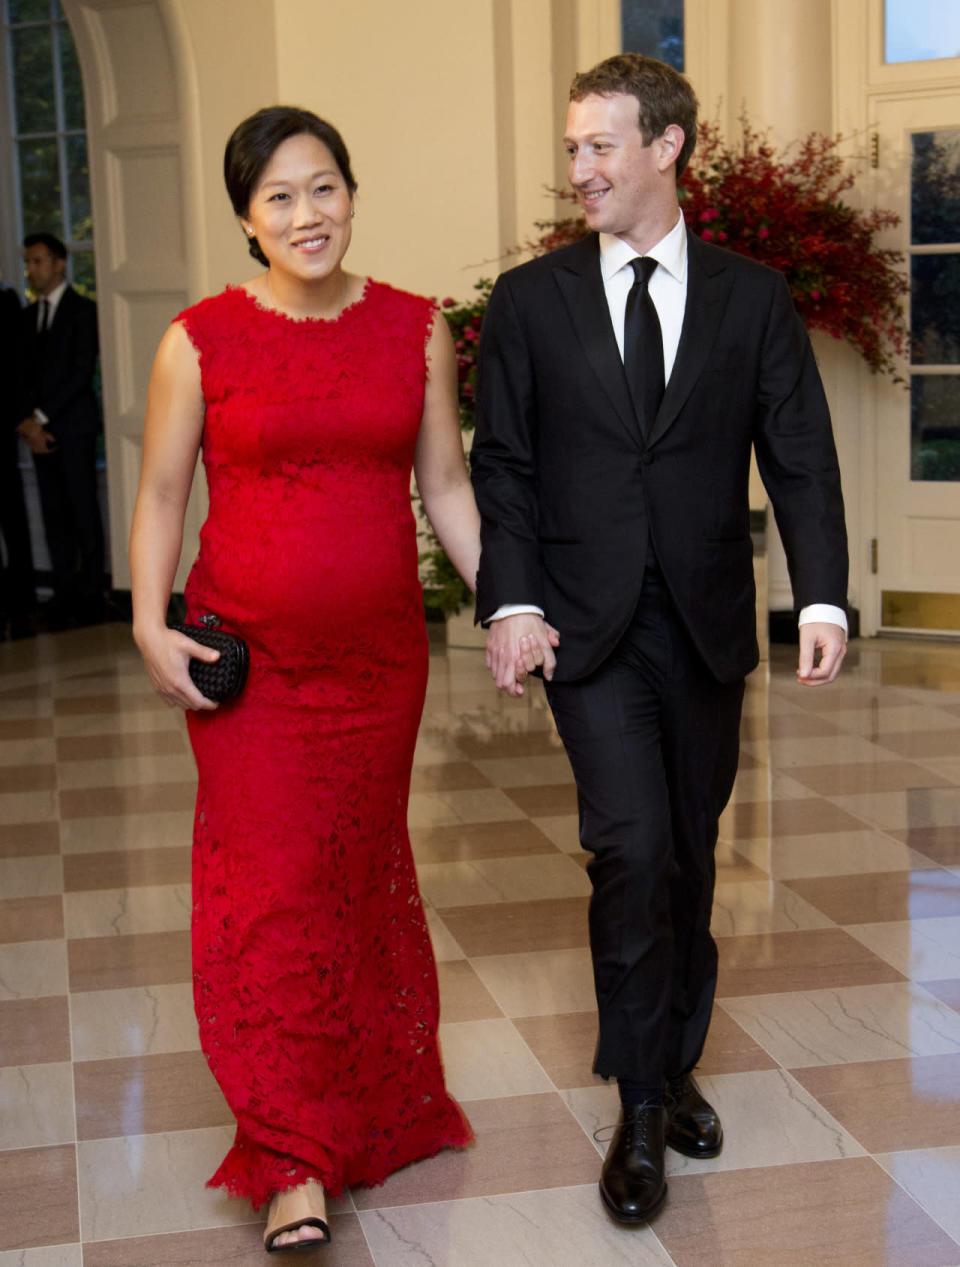 <p>Facebook Chairman and Chief Executive Officer Mark Zuckerberg was one of the many distinguished guests along with his pregnant wife, Priscilla Chan. The Bay Area-based doctor, who recently watched from front row at Rebeca Minkoff's tech-infused runway show, wore a red lace gown with a crew neck. </p>